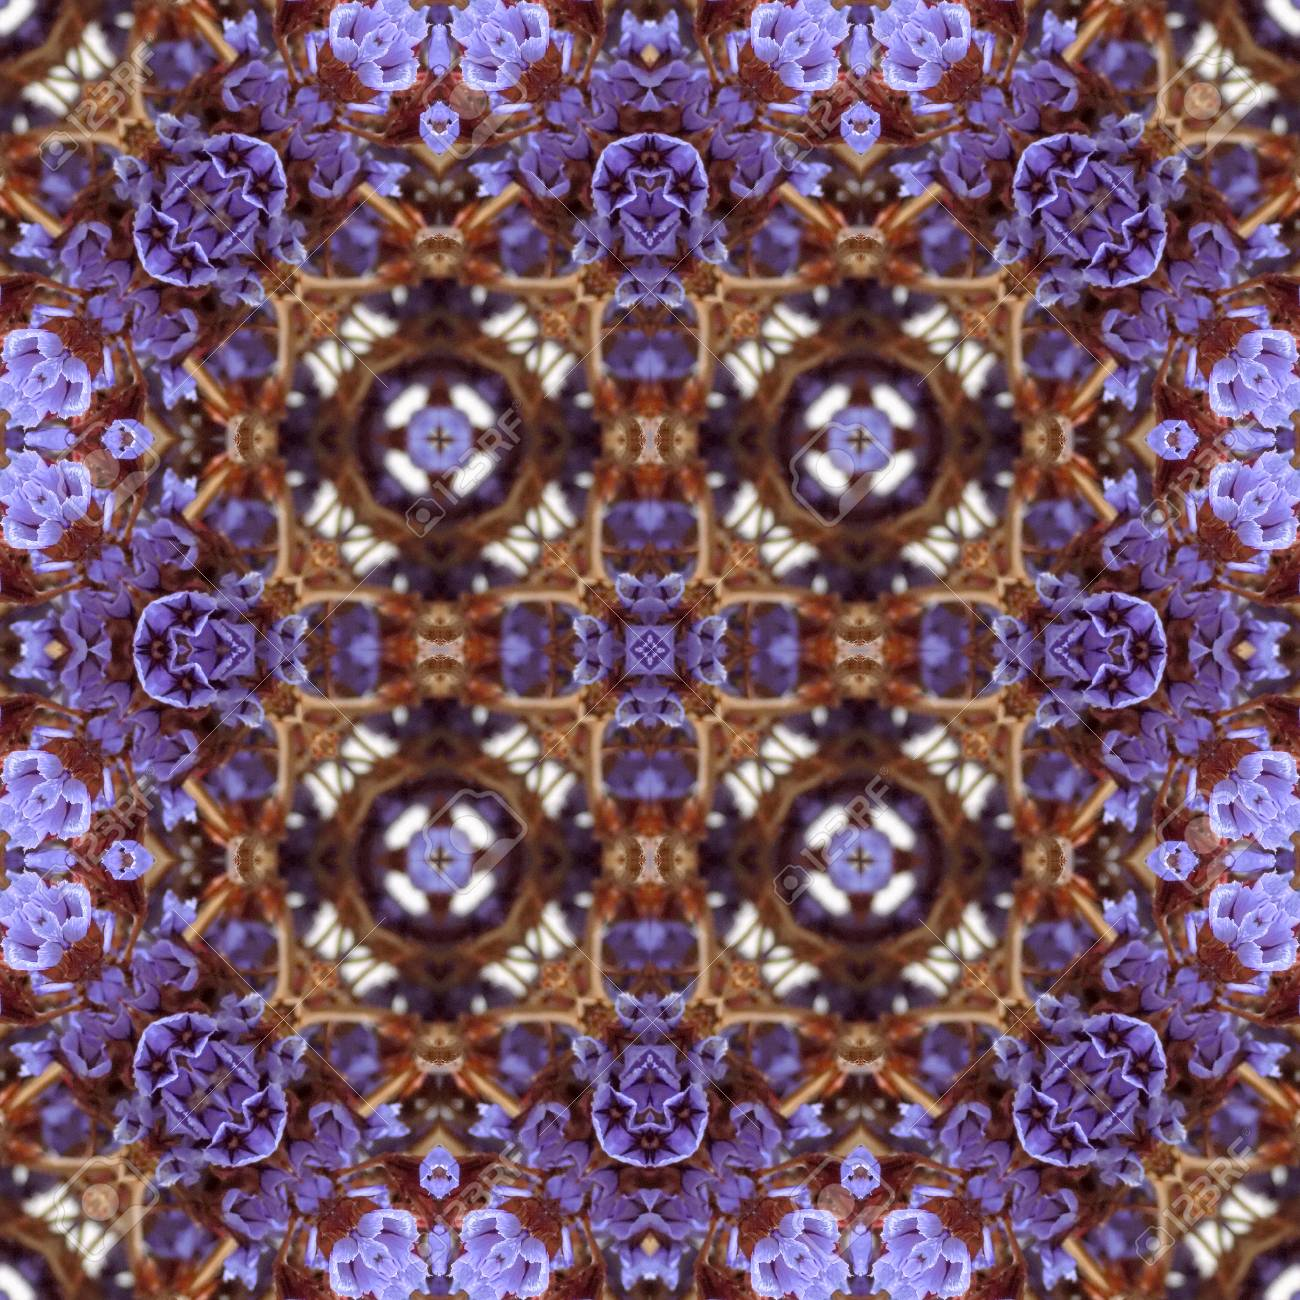 Abstract flowers seamless pattern background. Kaleidoscope from flowers. Hydraulic tile design. - 104075065